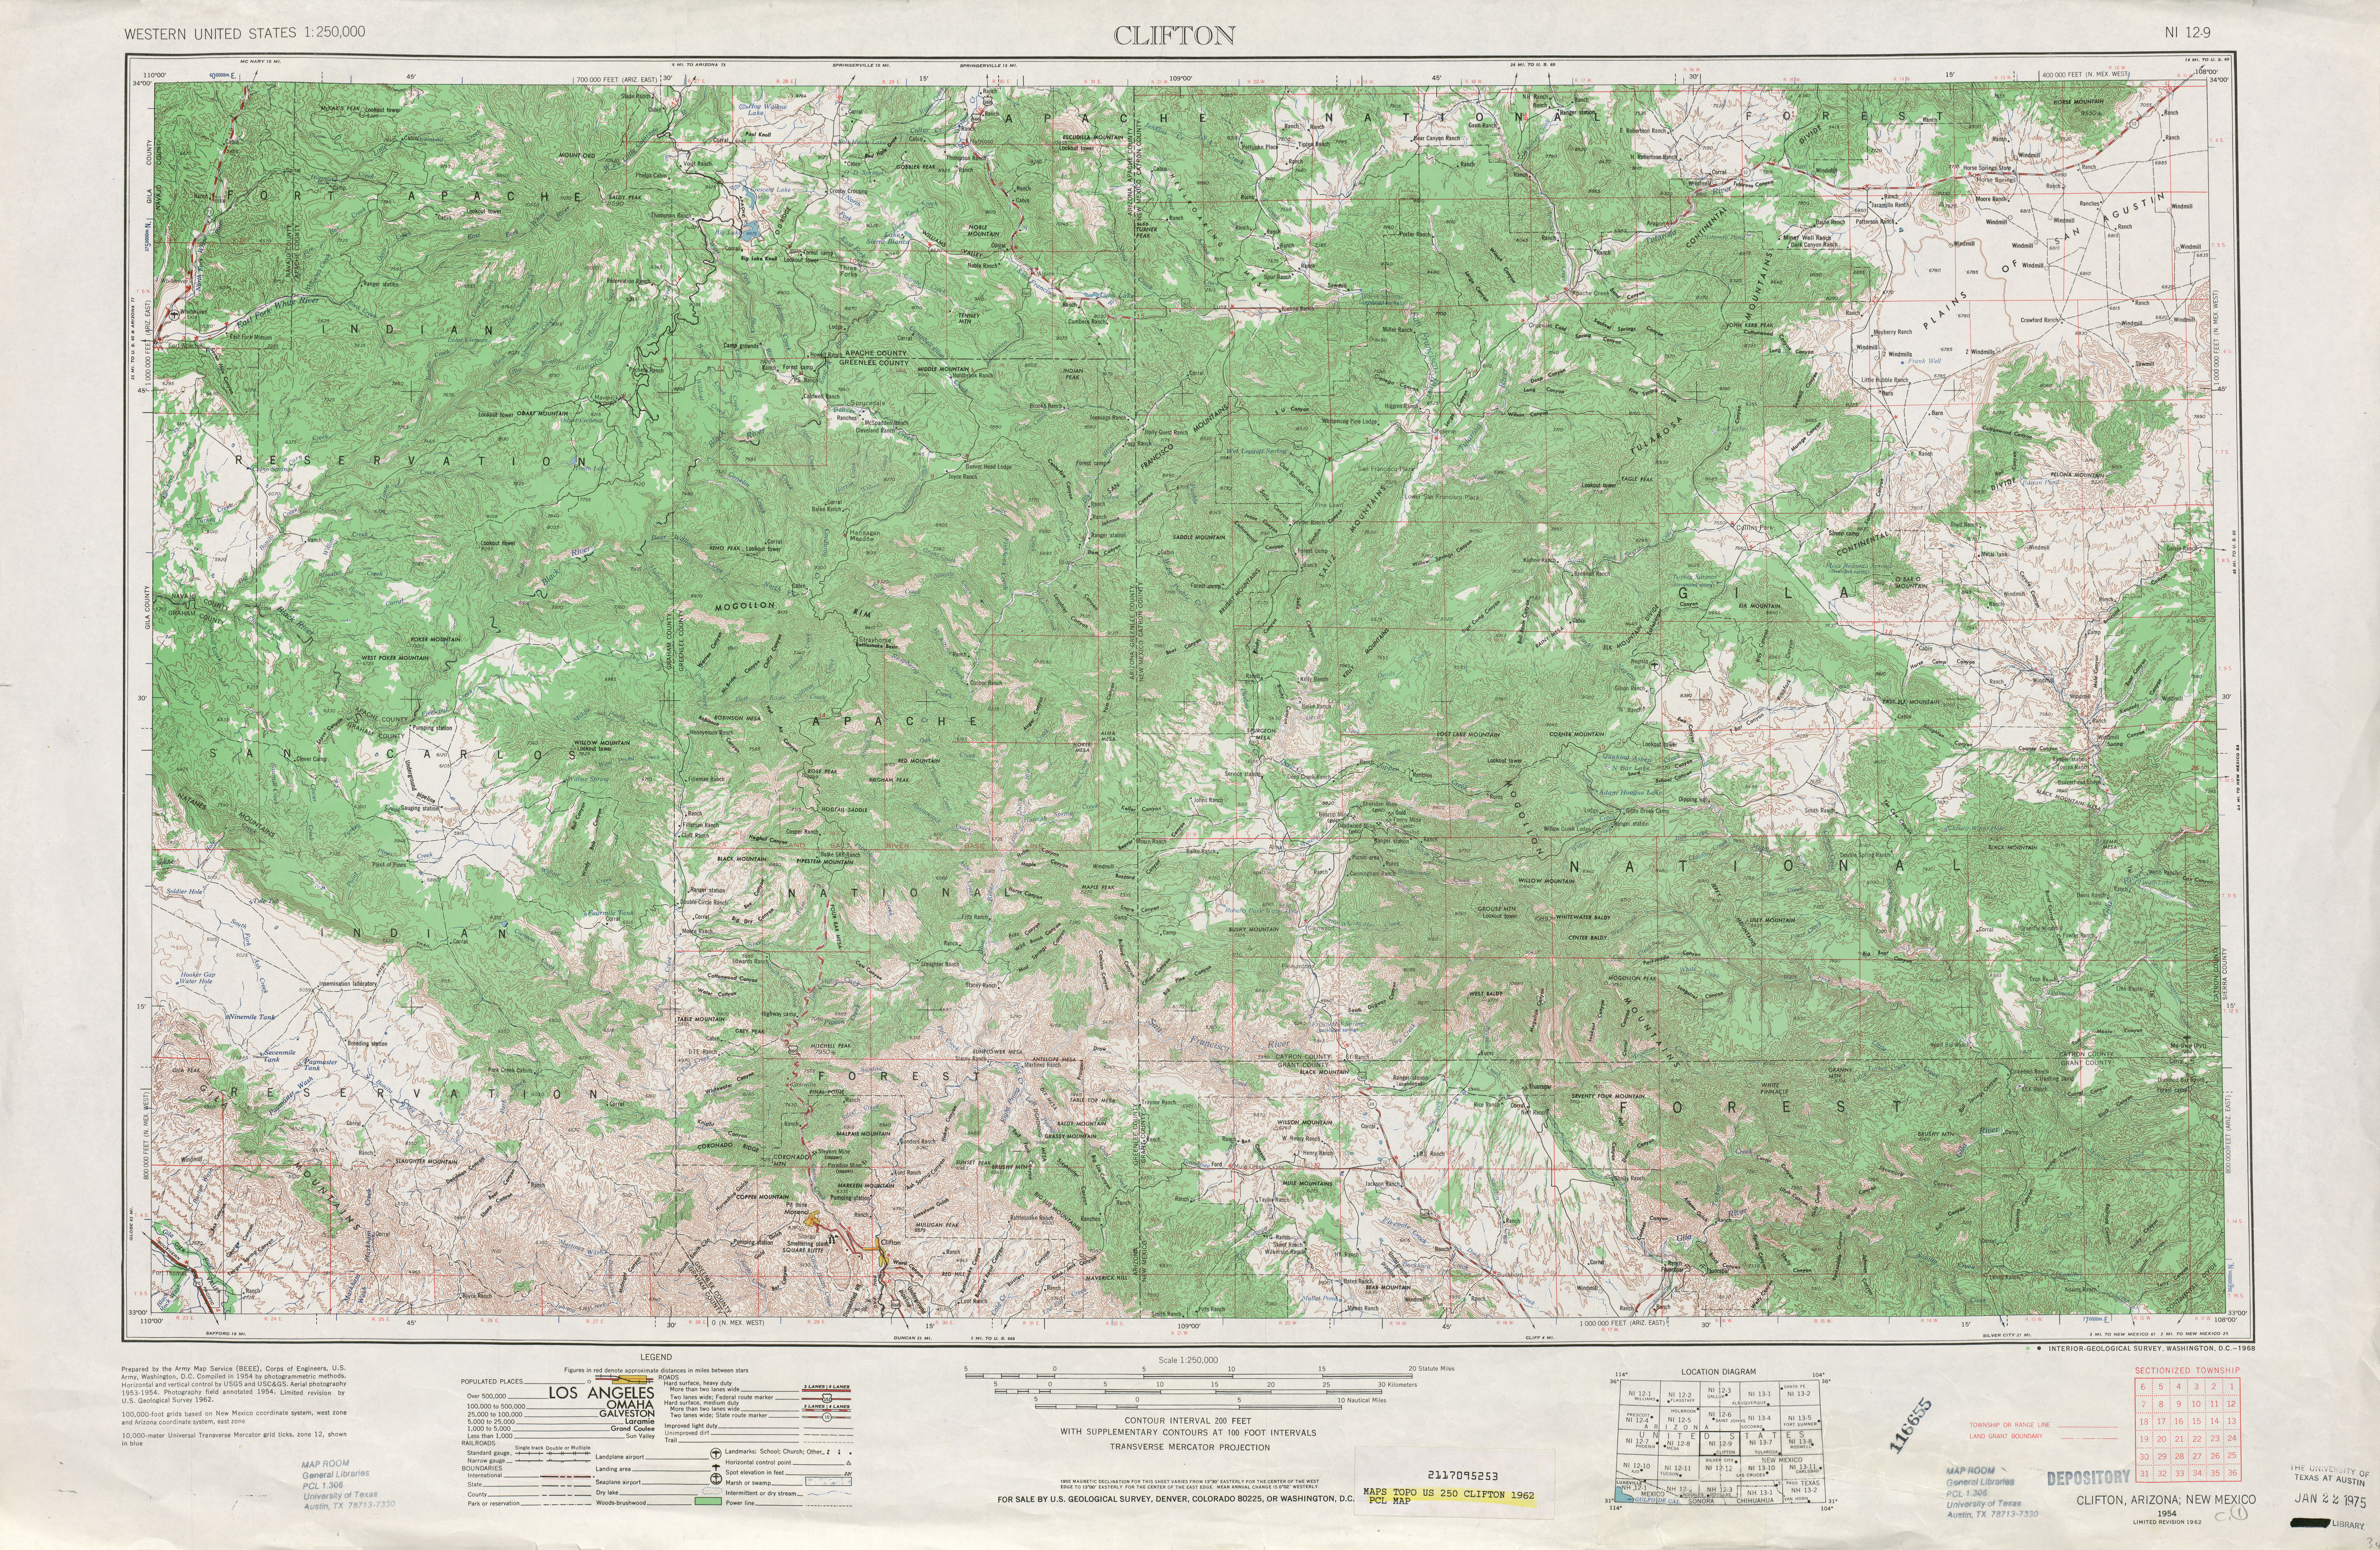 Clifton Topographic Map Sheet, United States 1962